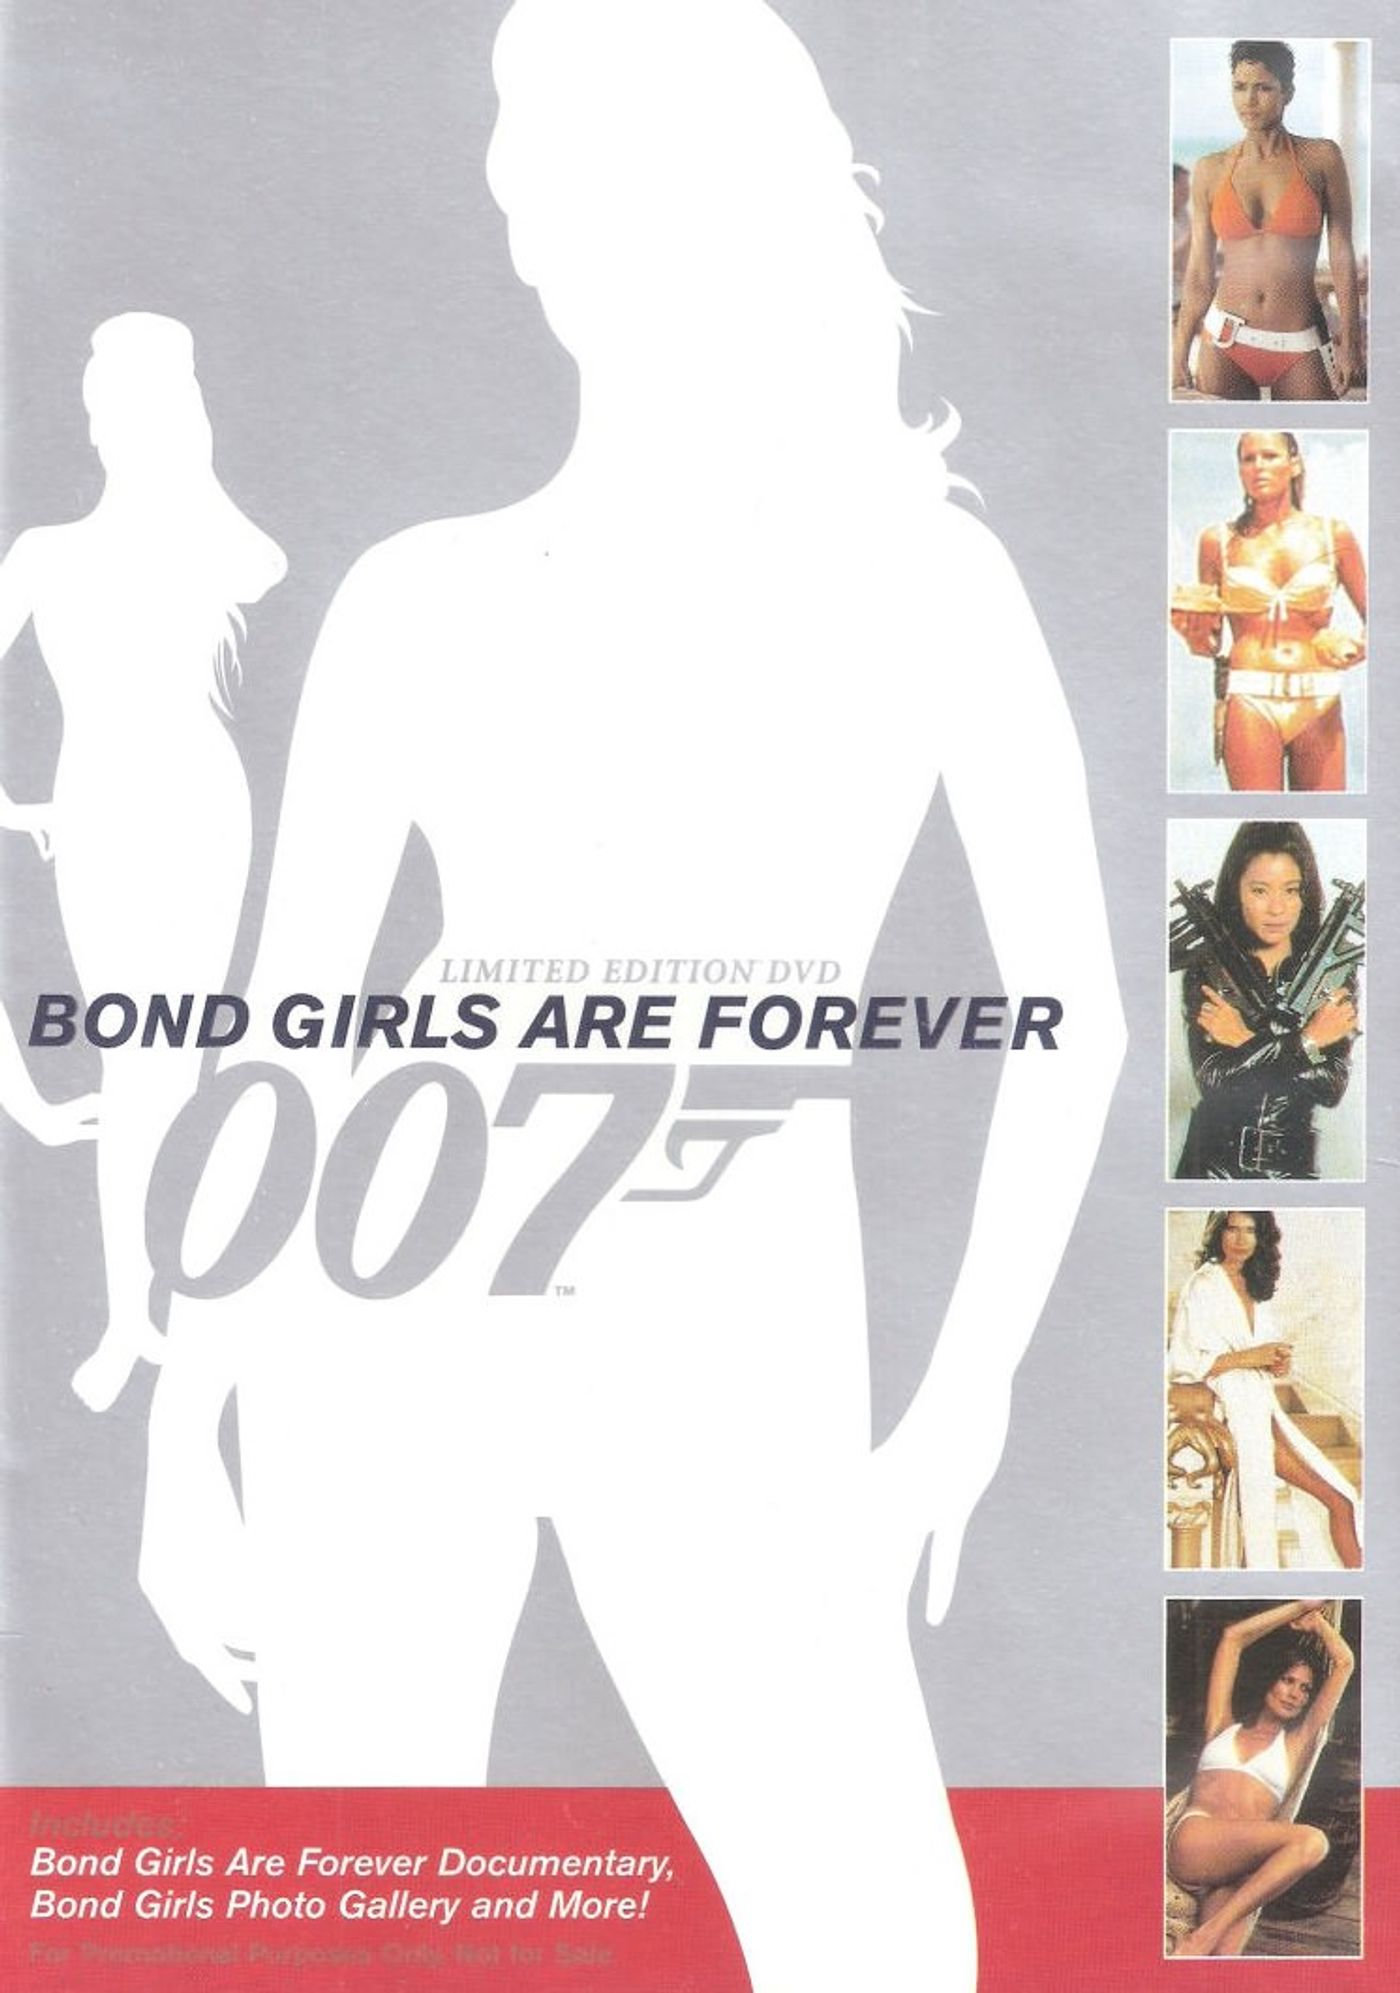 Bond girls are forever (V.O.)